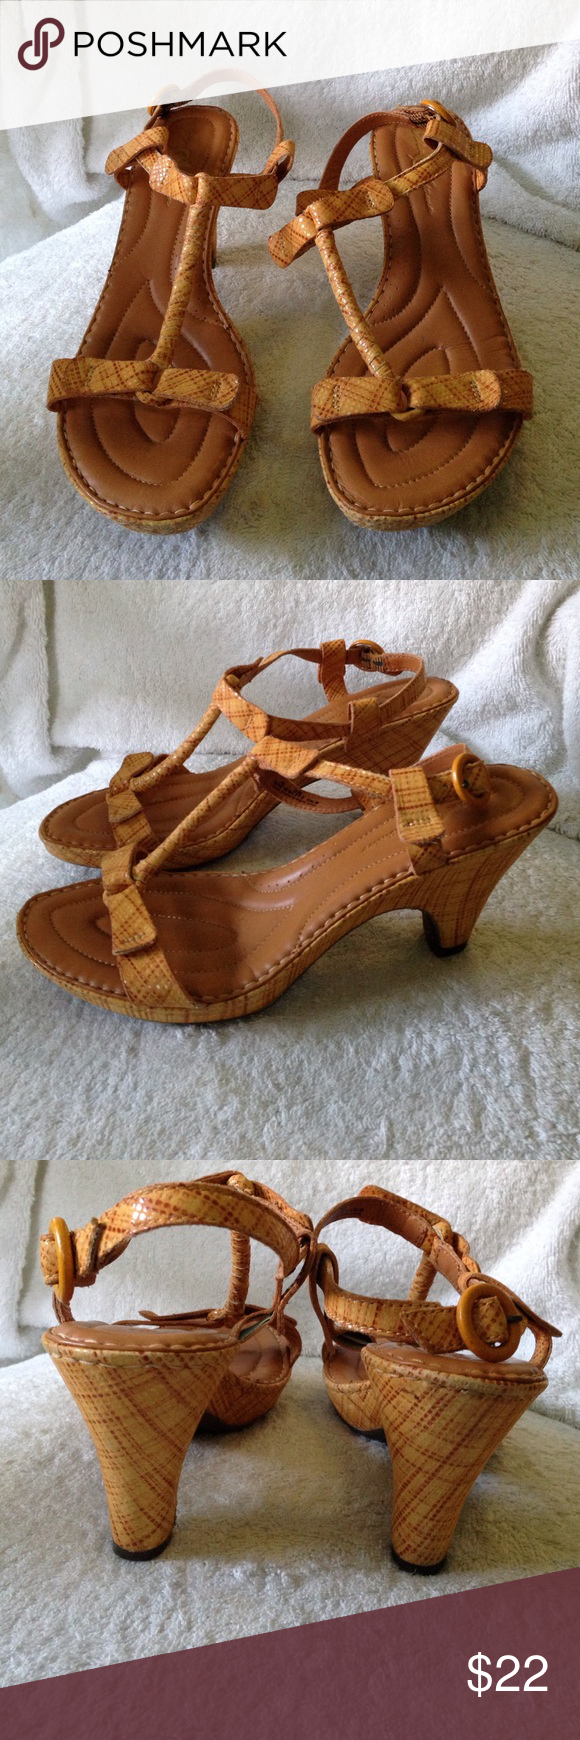 "8 Born Crown Leather Sandals Heels Gorgeous sexy strappy sandals, printed tan leather, 3 1/4"" heel. Barely worn. Size 8/39. Born Shoes Sandals"